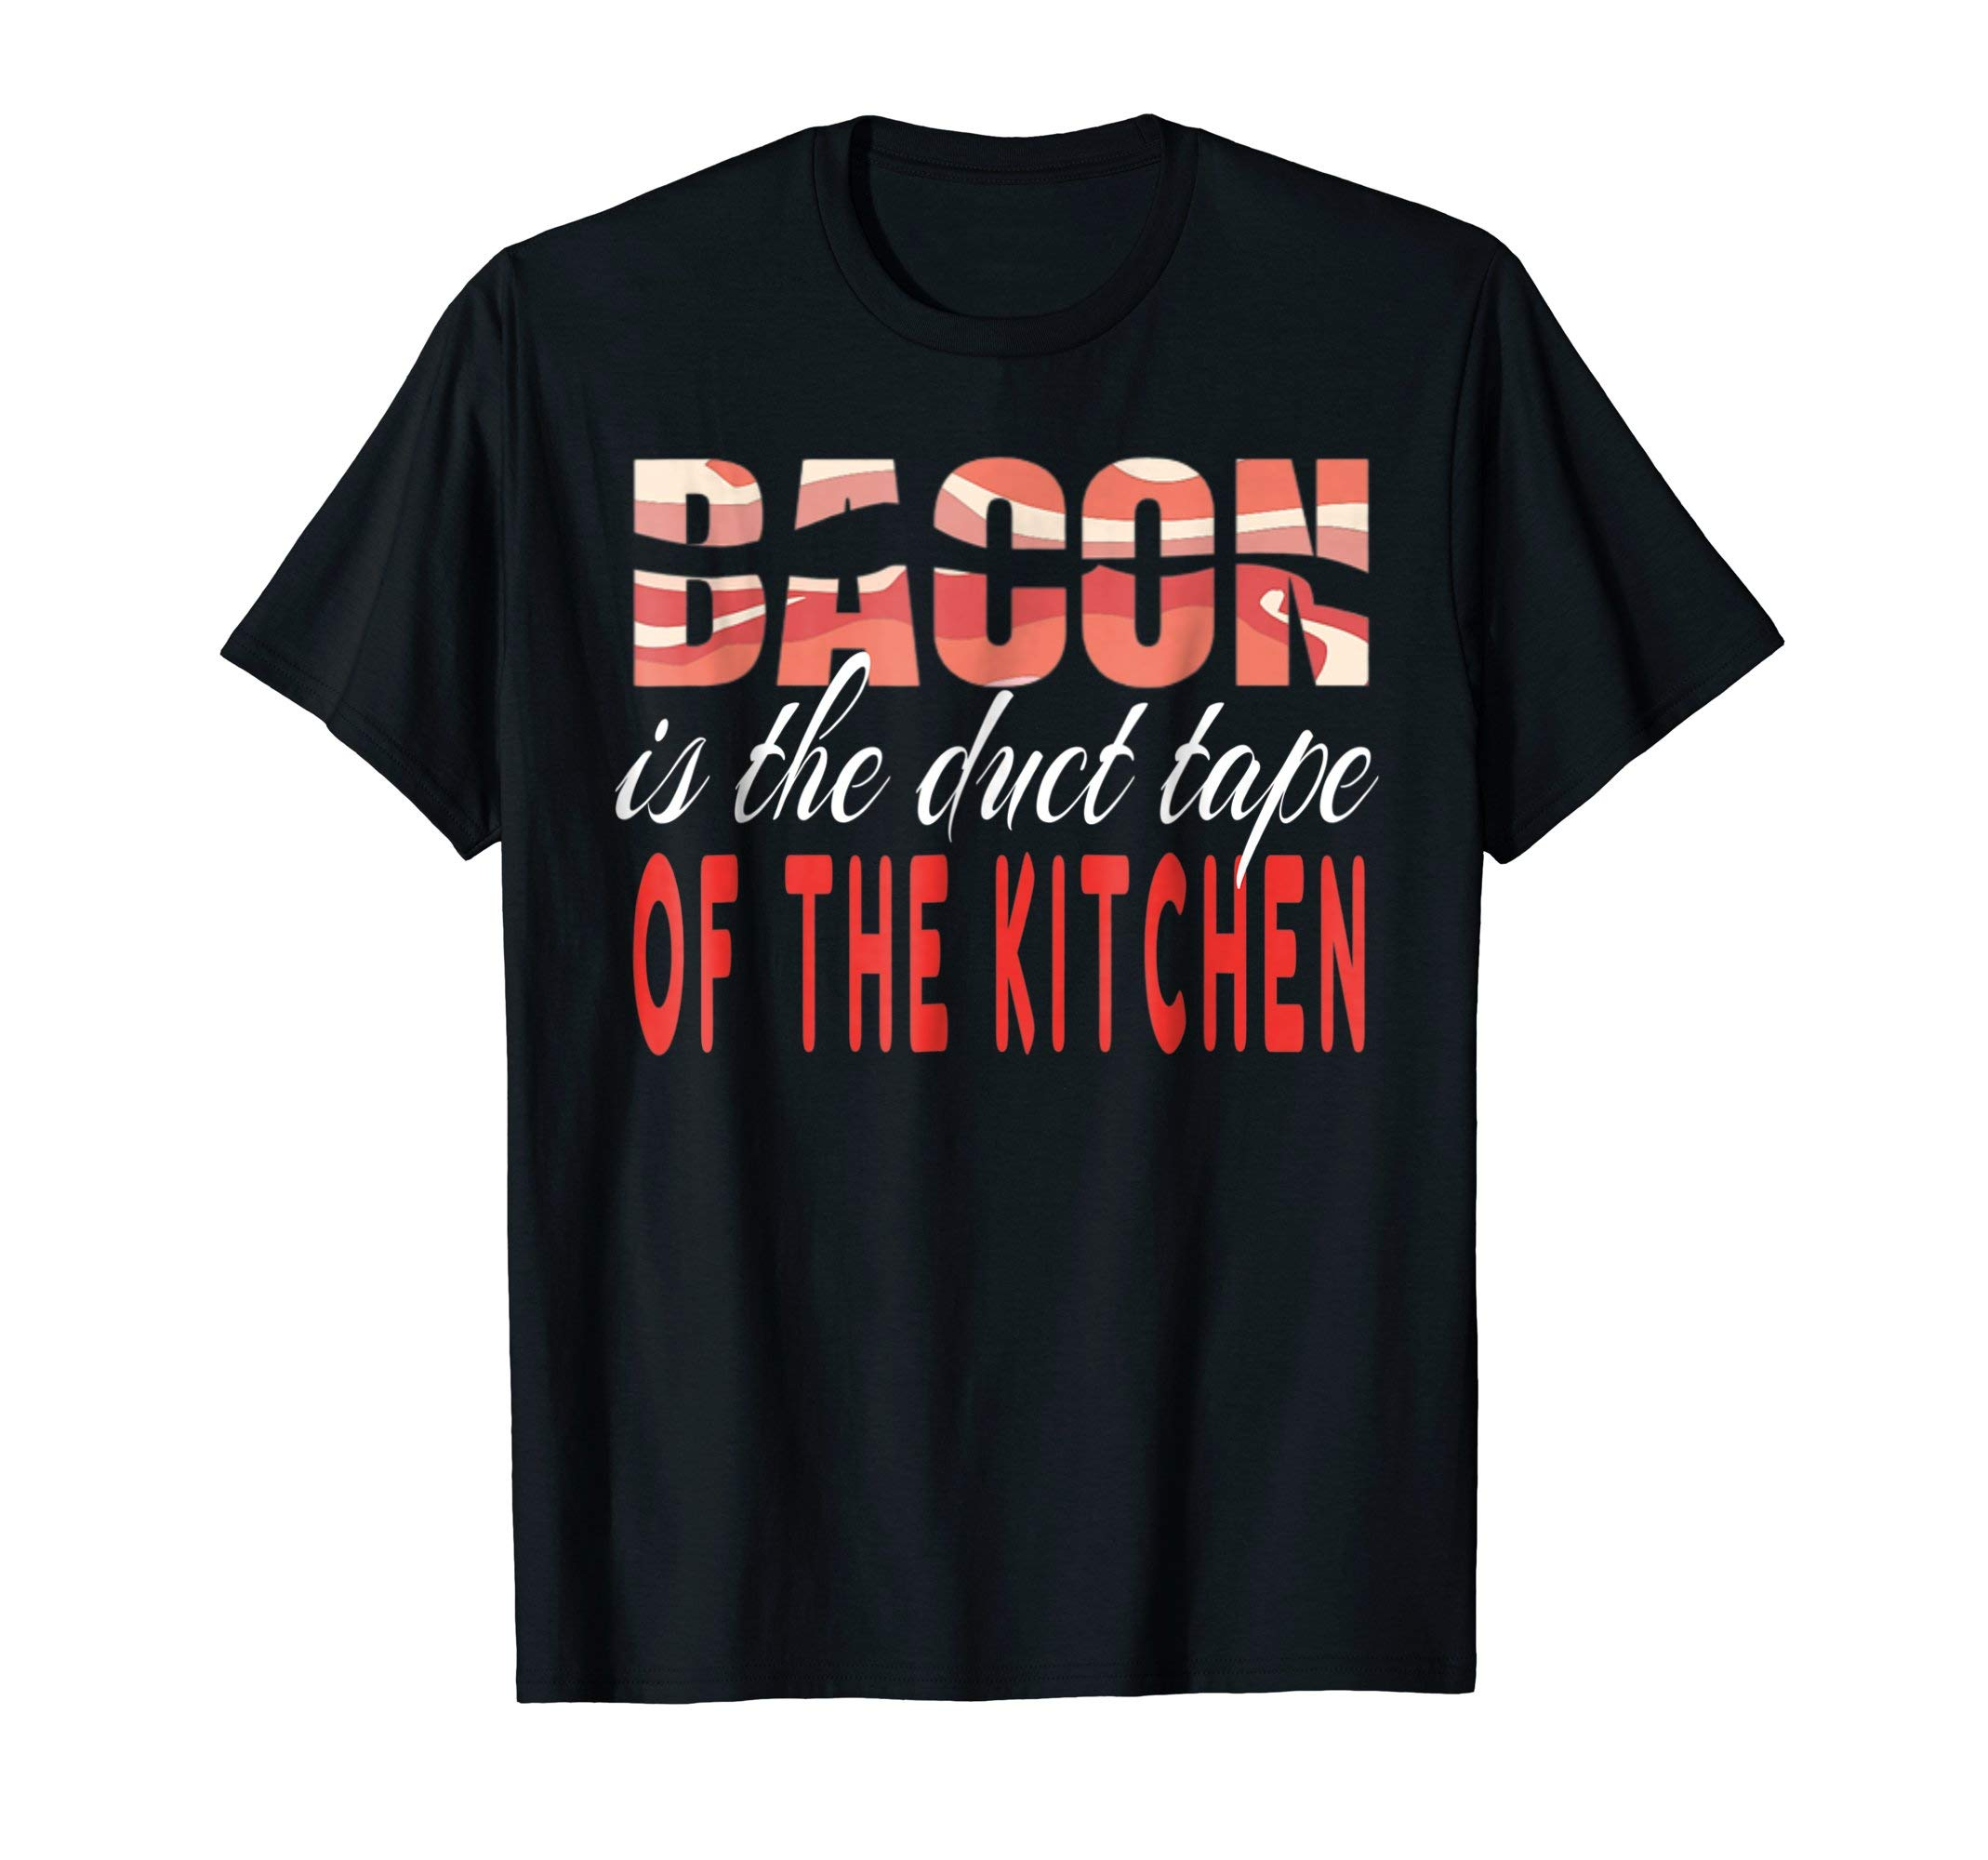 Bacon Is The Duct Tape Of The Kitchen Tshirt